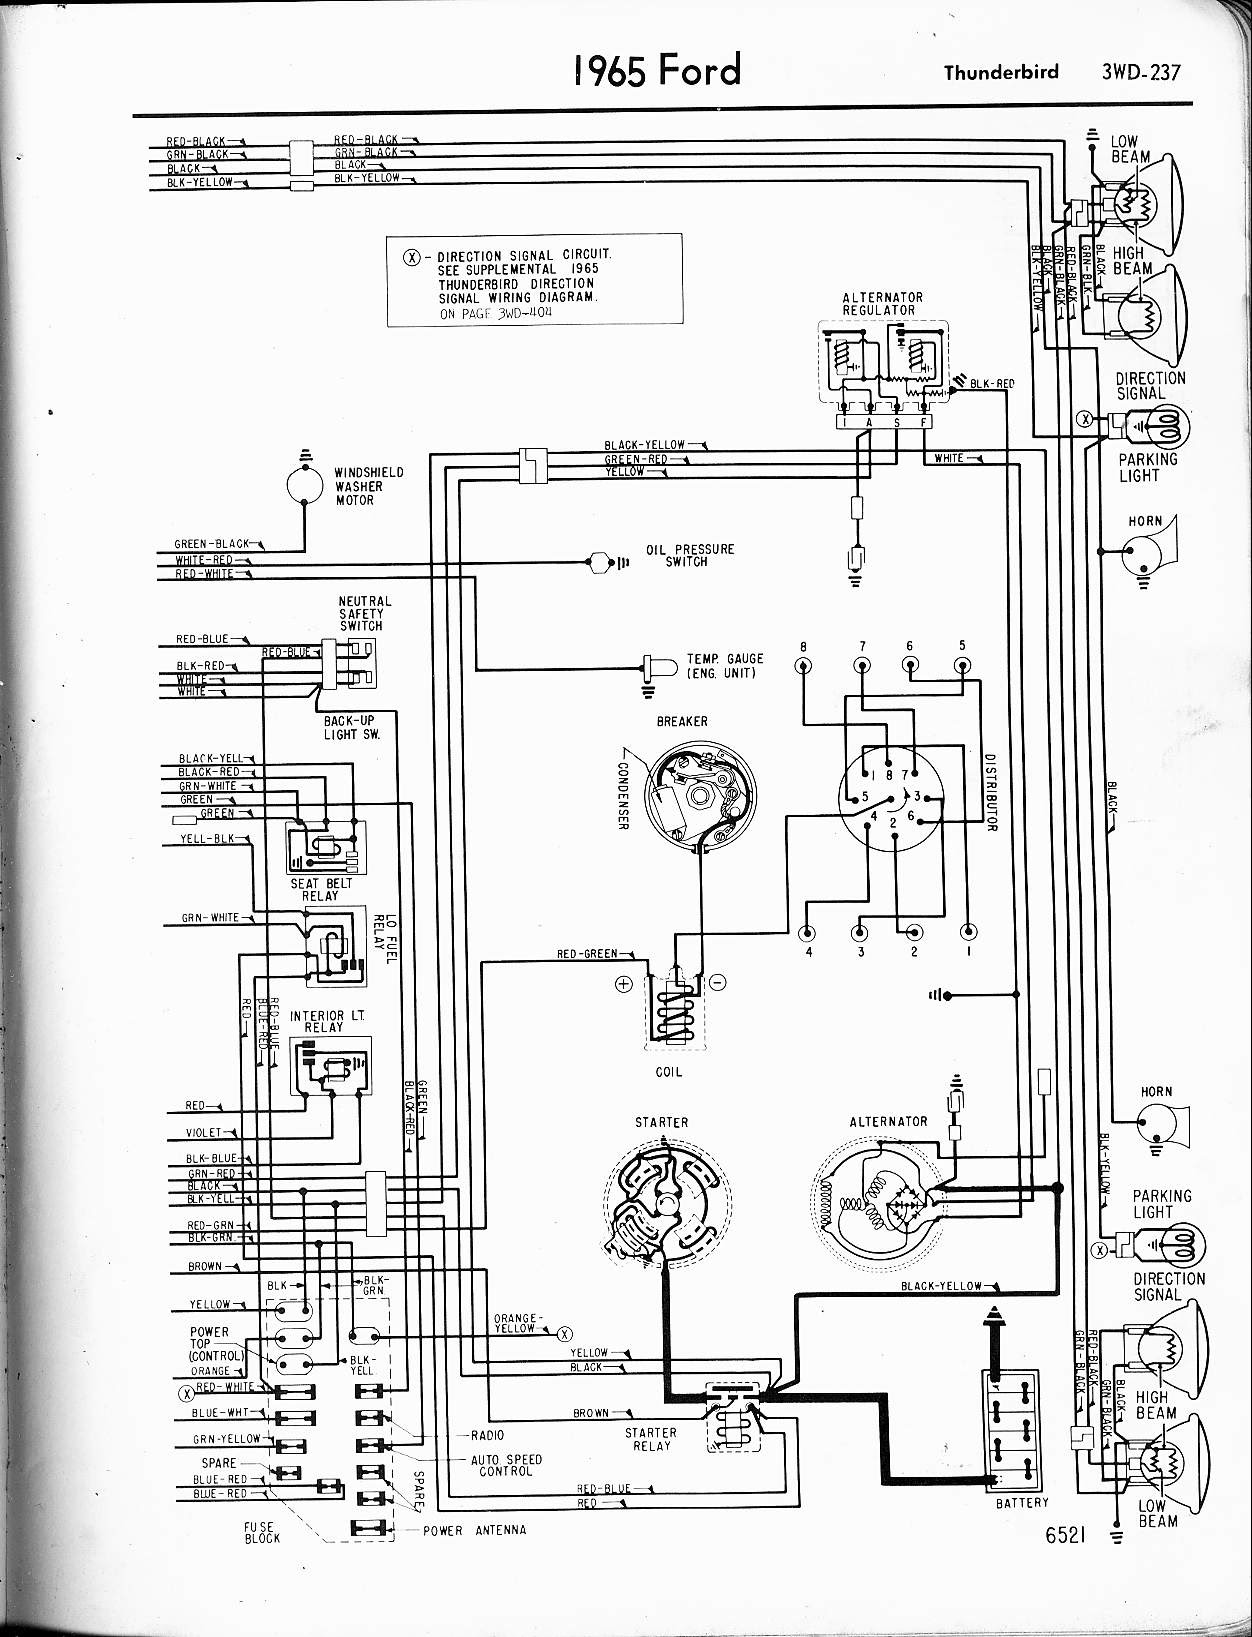 1957 Ford Thunderbird Underhood Wiring Diagram Wiring Diagram Regional Regional Frankmotors Es